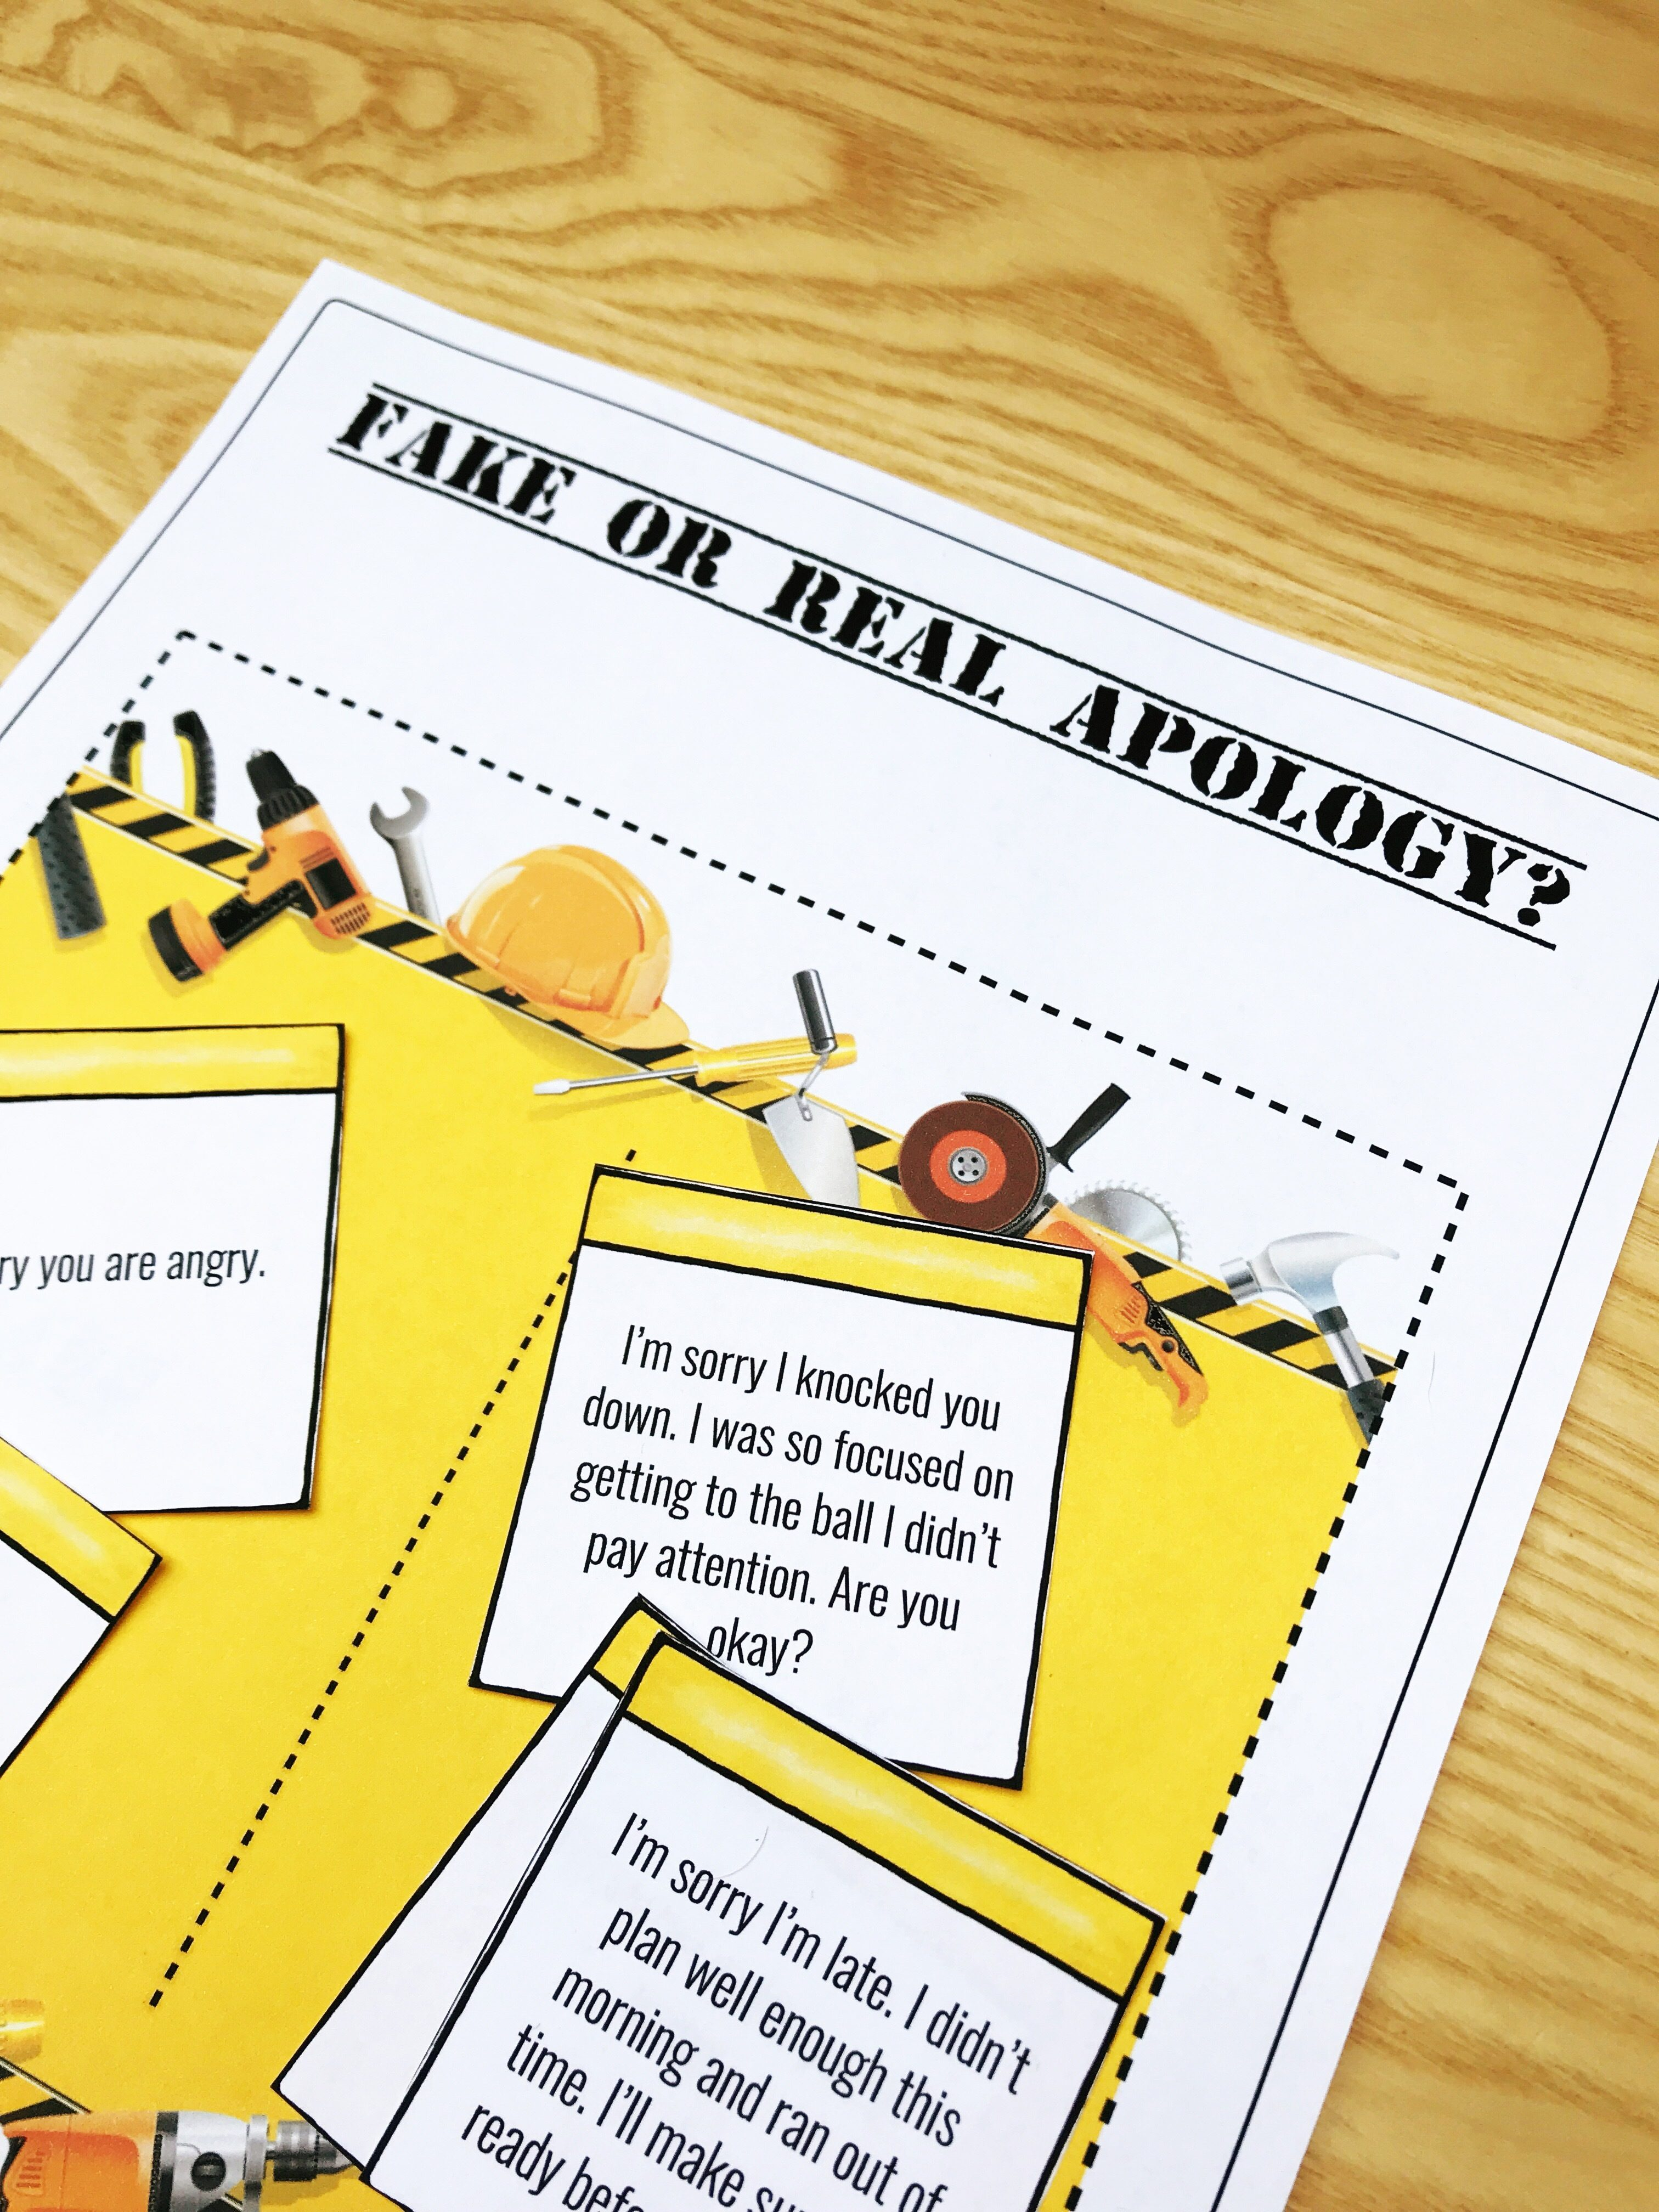 Is it a real or fake apology? Counseling sorting activity